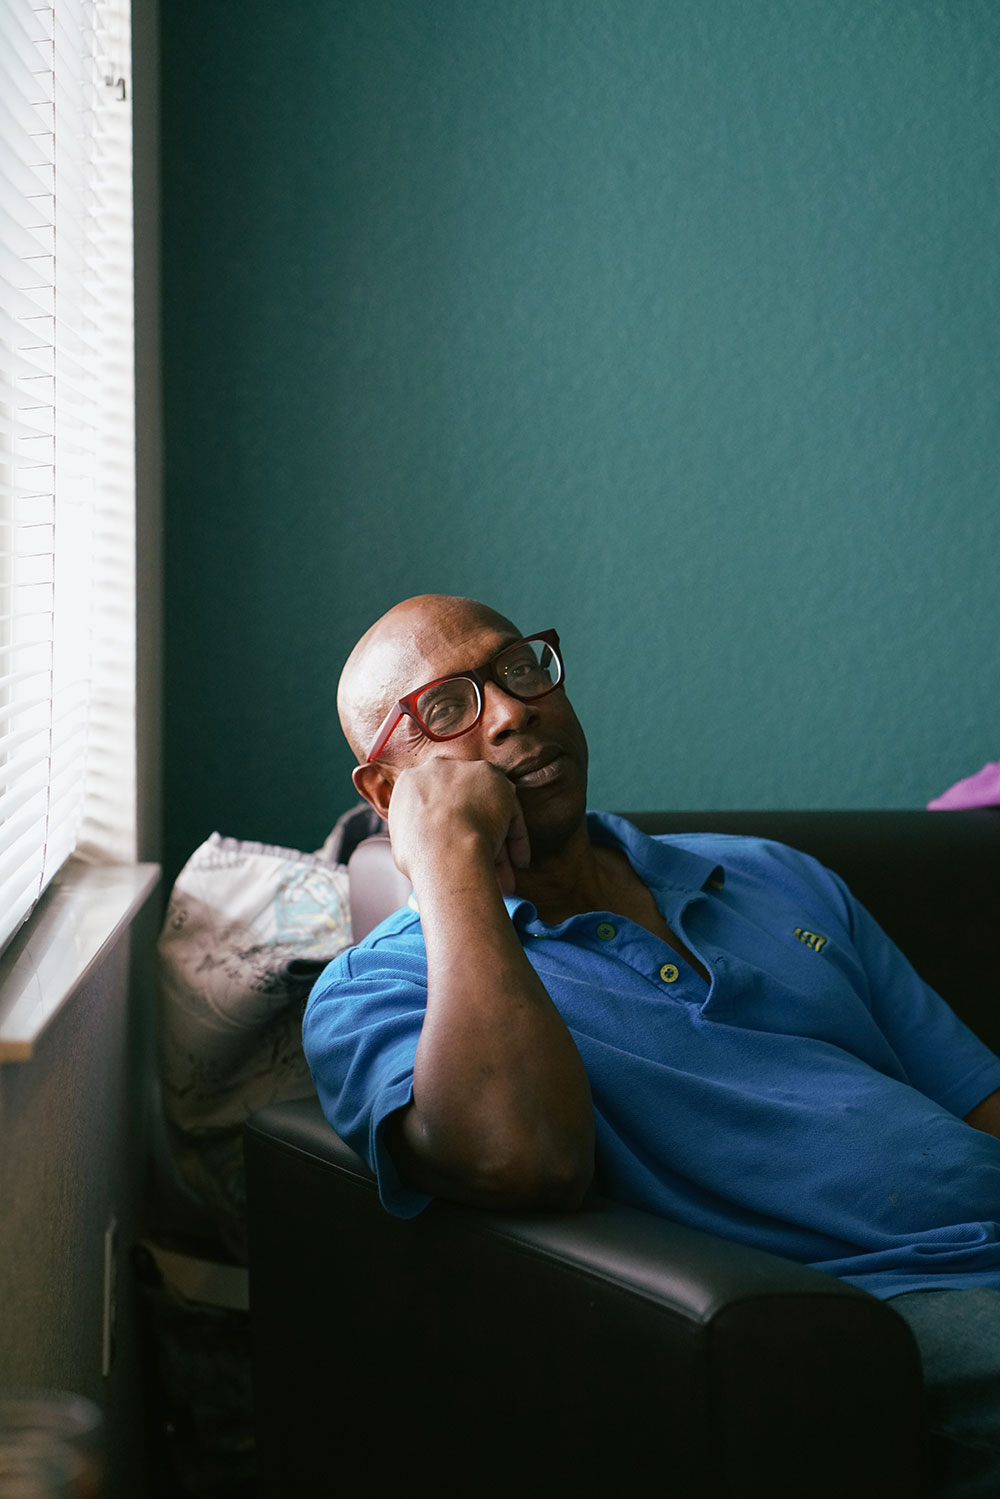 Malcolm experienced debilitating hip pain while living on the streets of Denver.